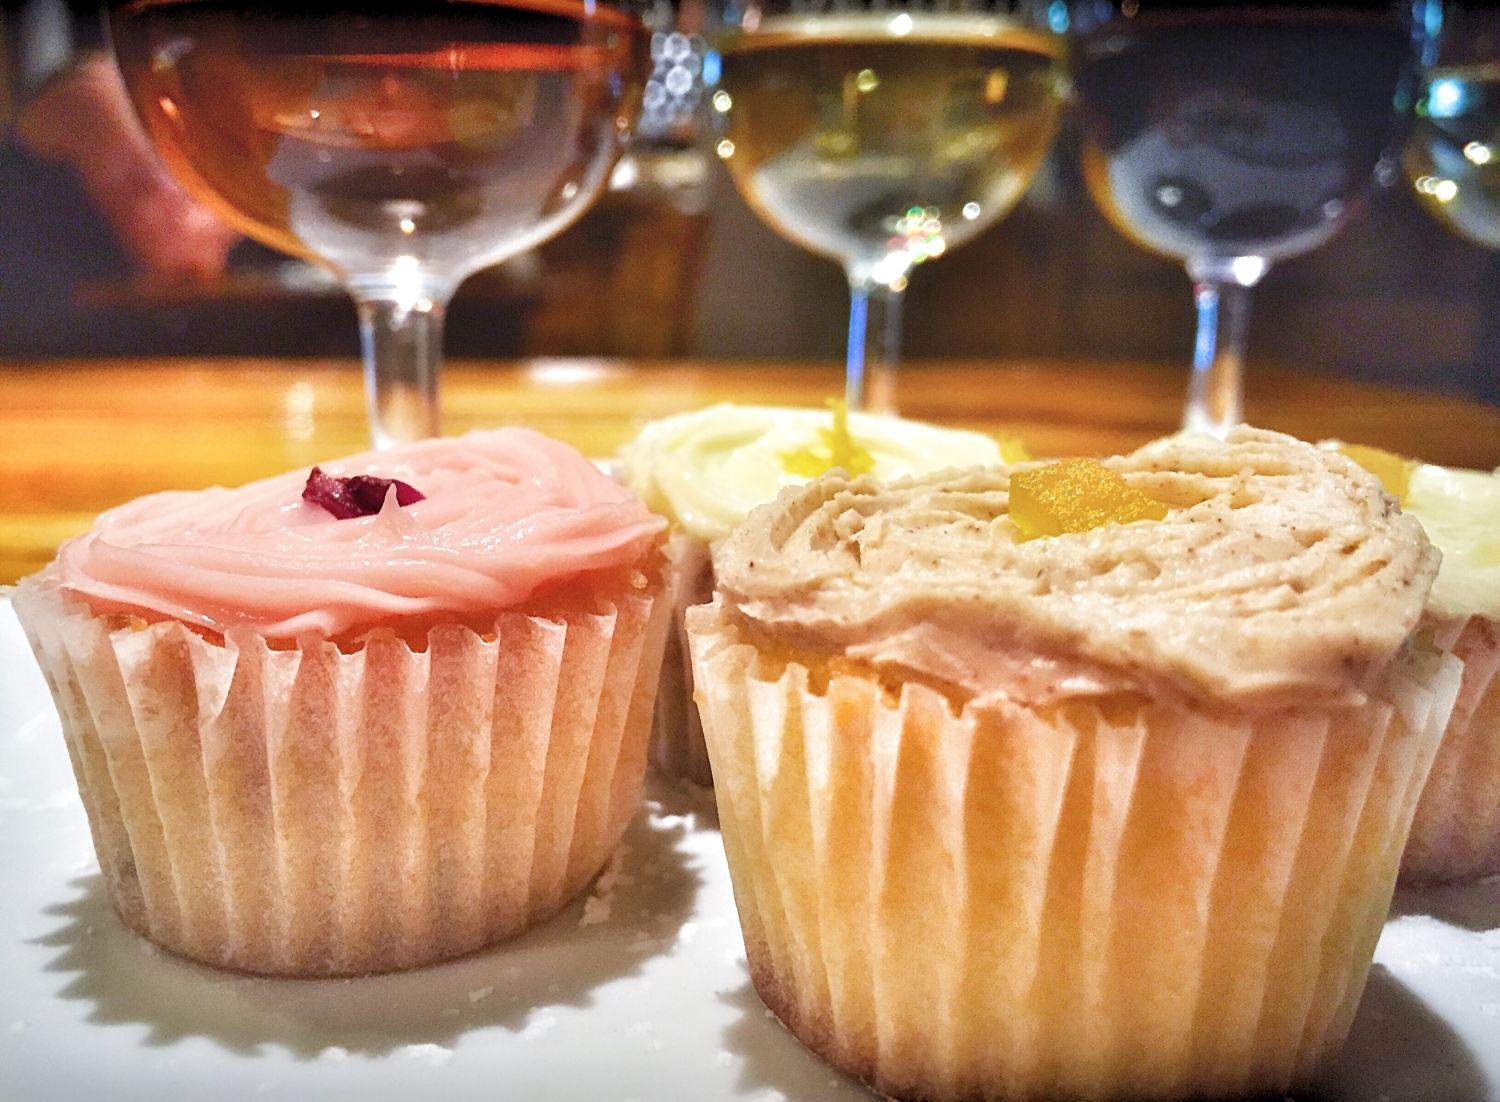 My favorite was the pumpkin cupcake with the Pinotage - a sweet and spicy pairing.